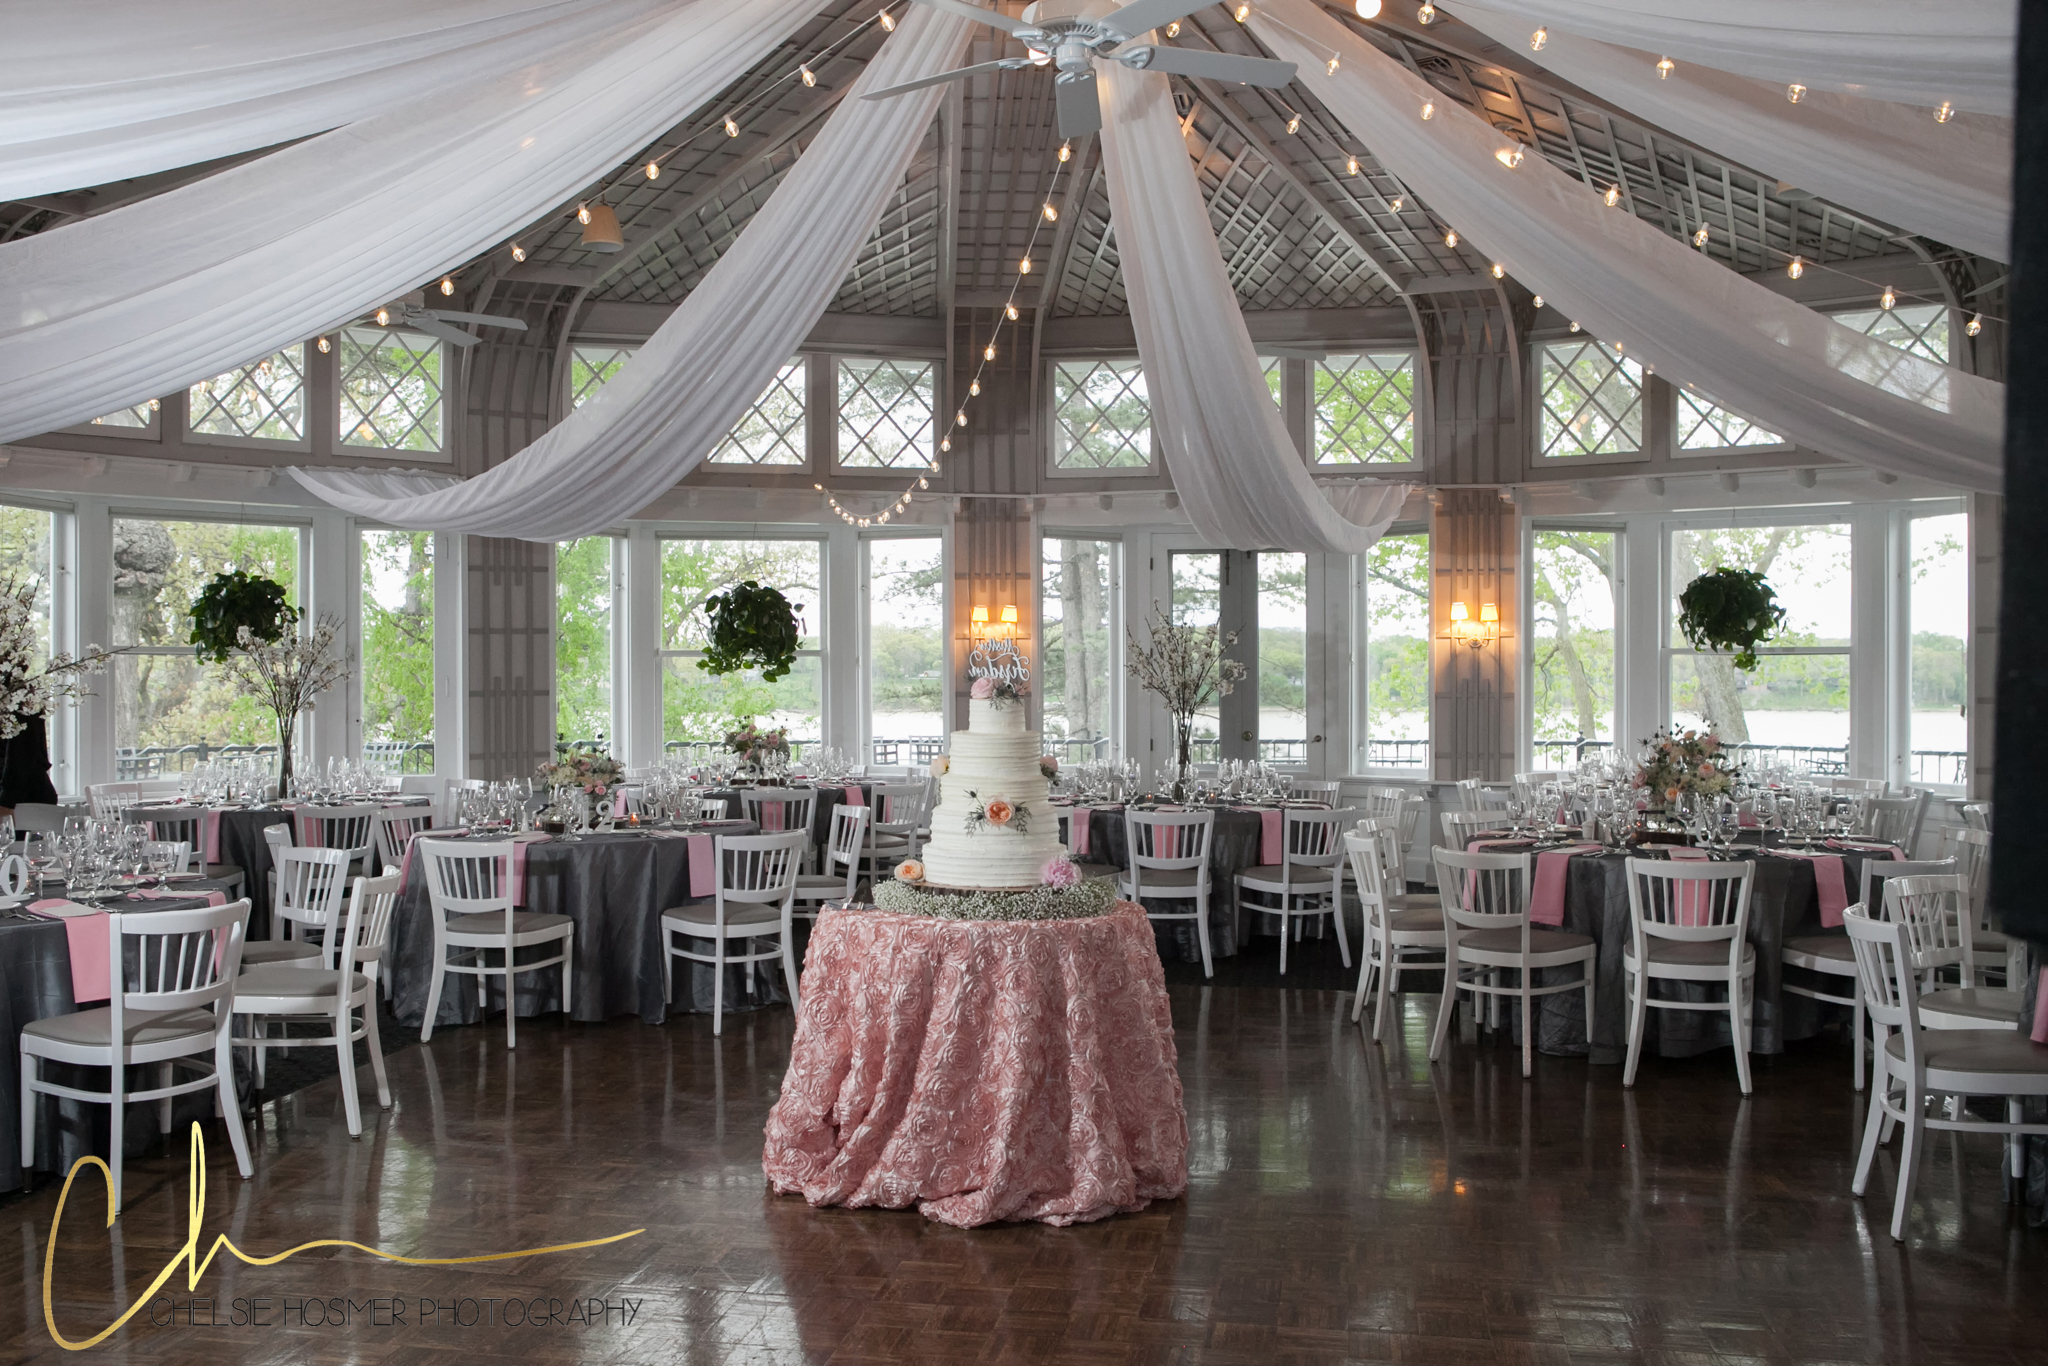 Rent Your Wedding Decorations Your Perfect Day Perrysburg Oh